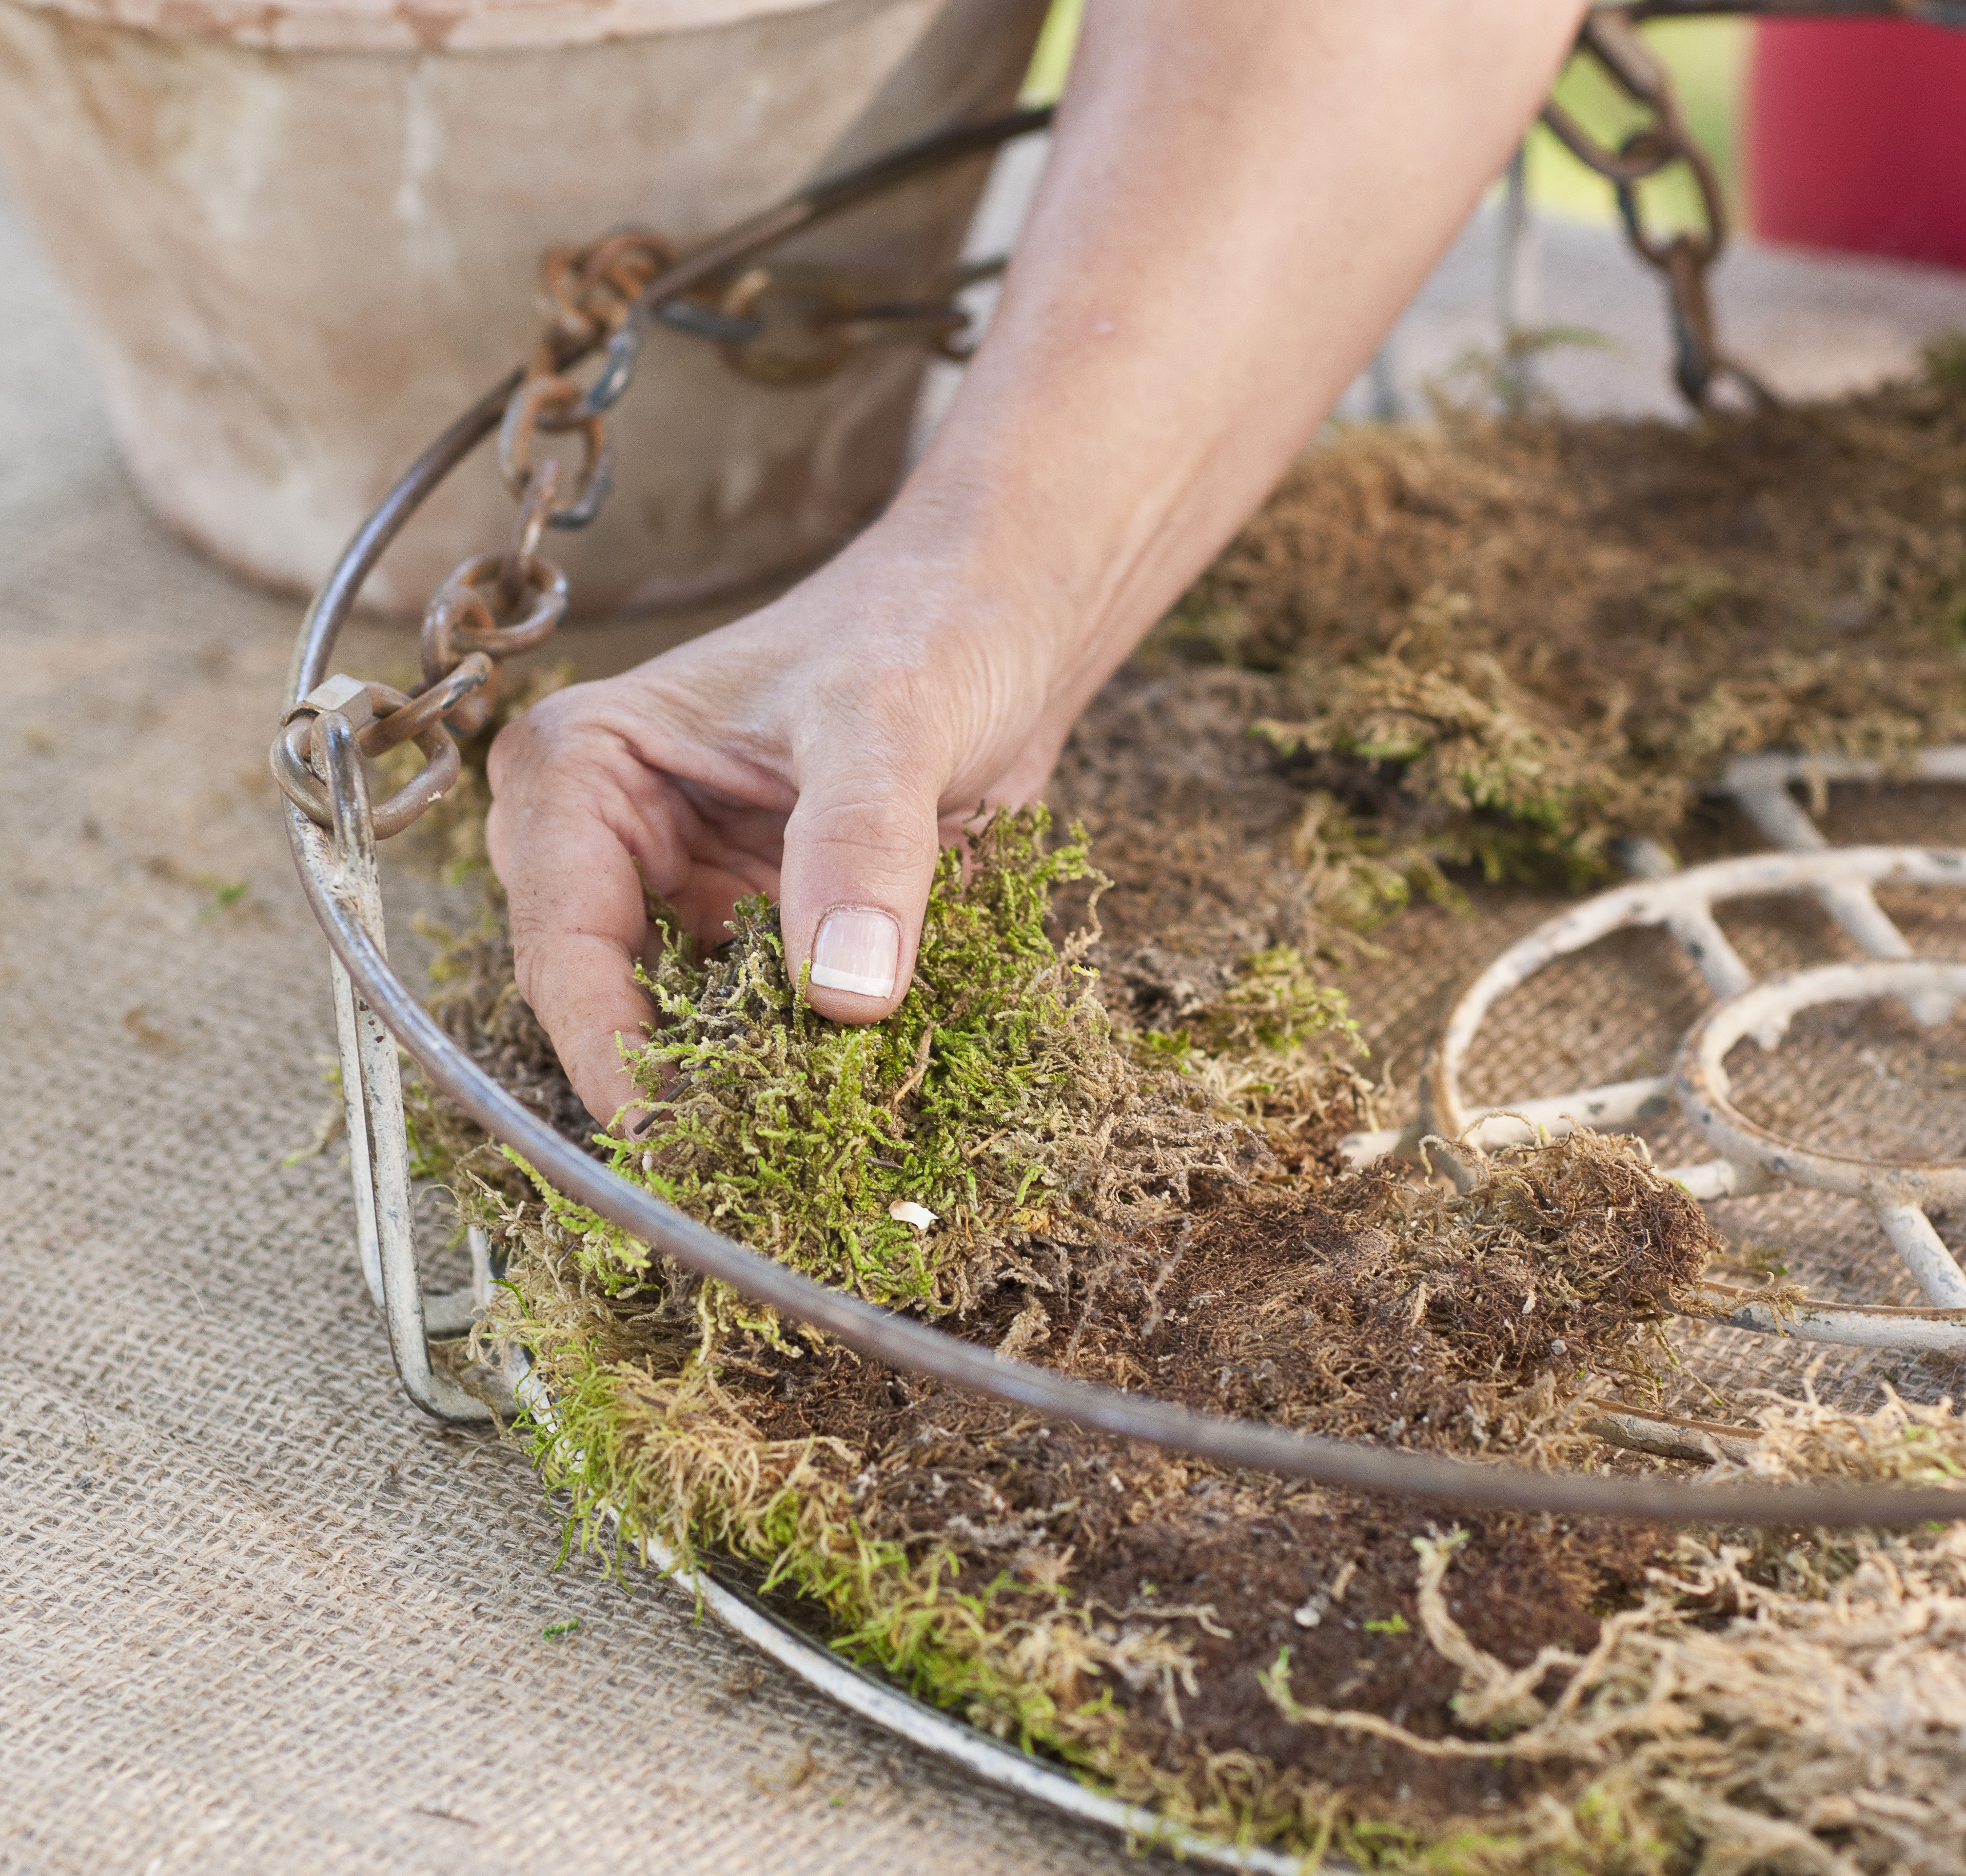 Step 5: Line basket with moss